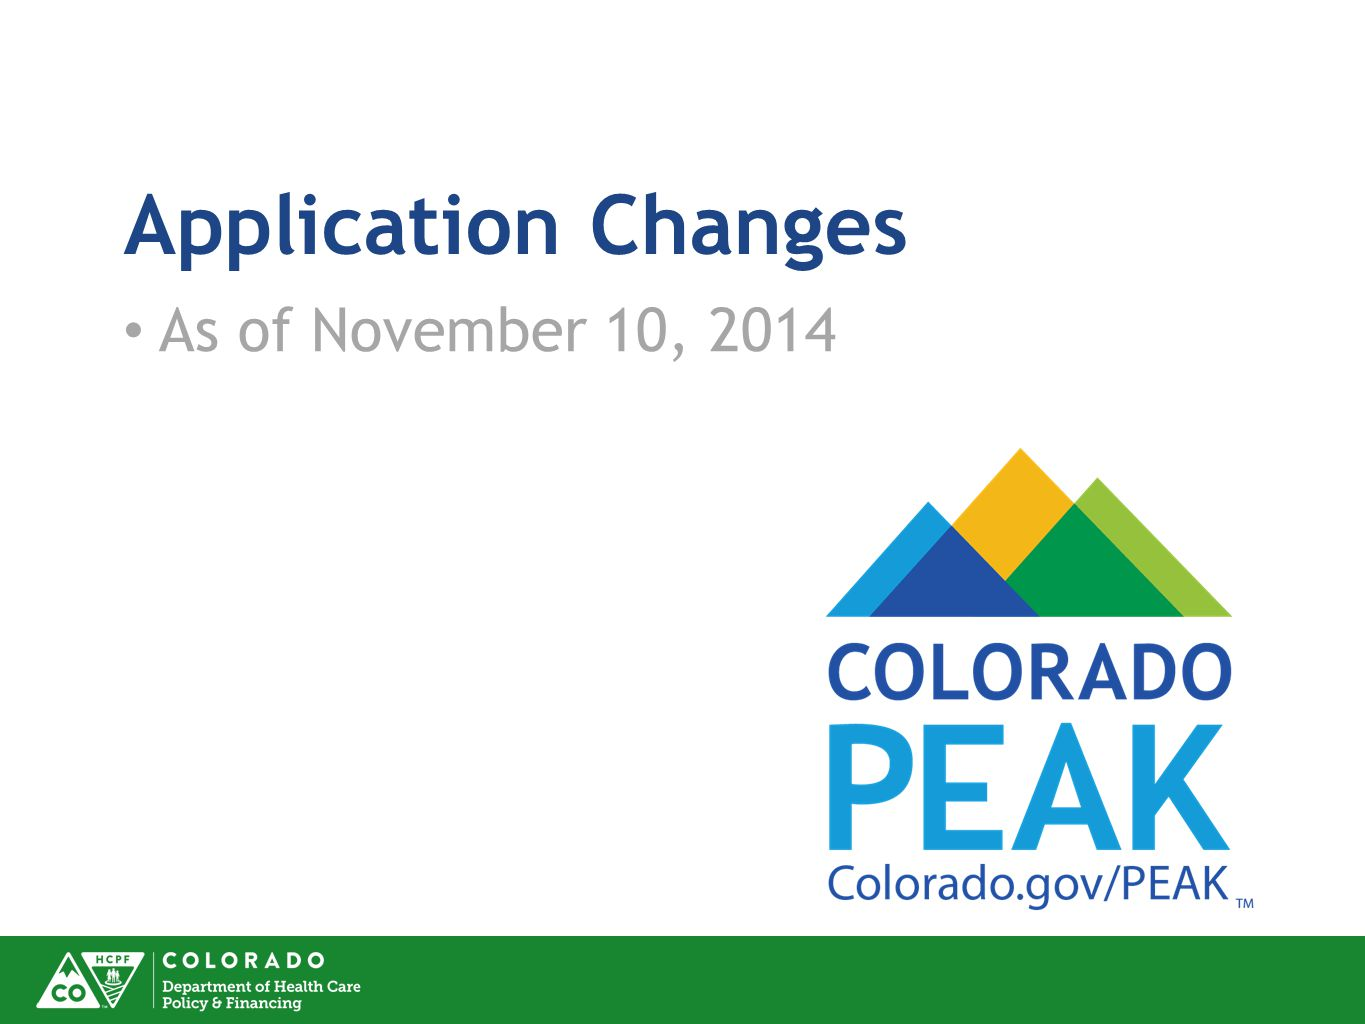 Application Changes As of November 10, 2014